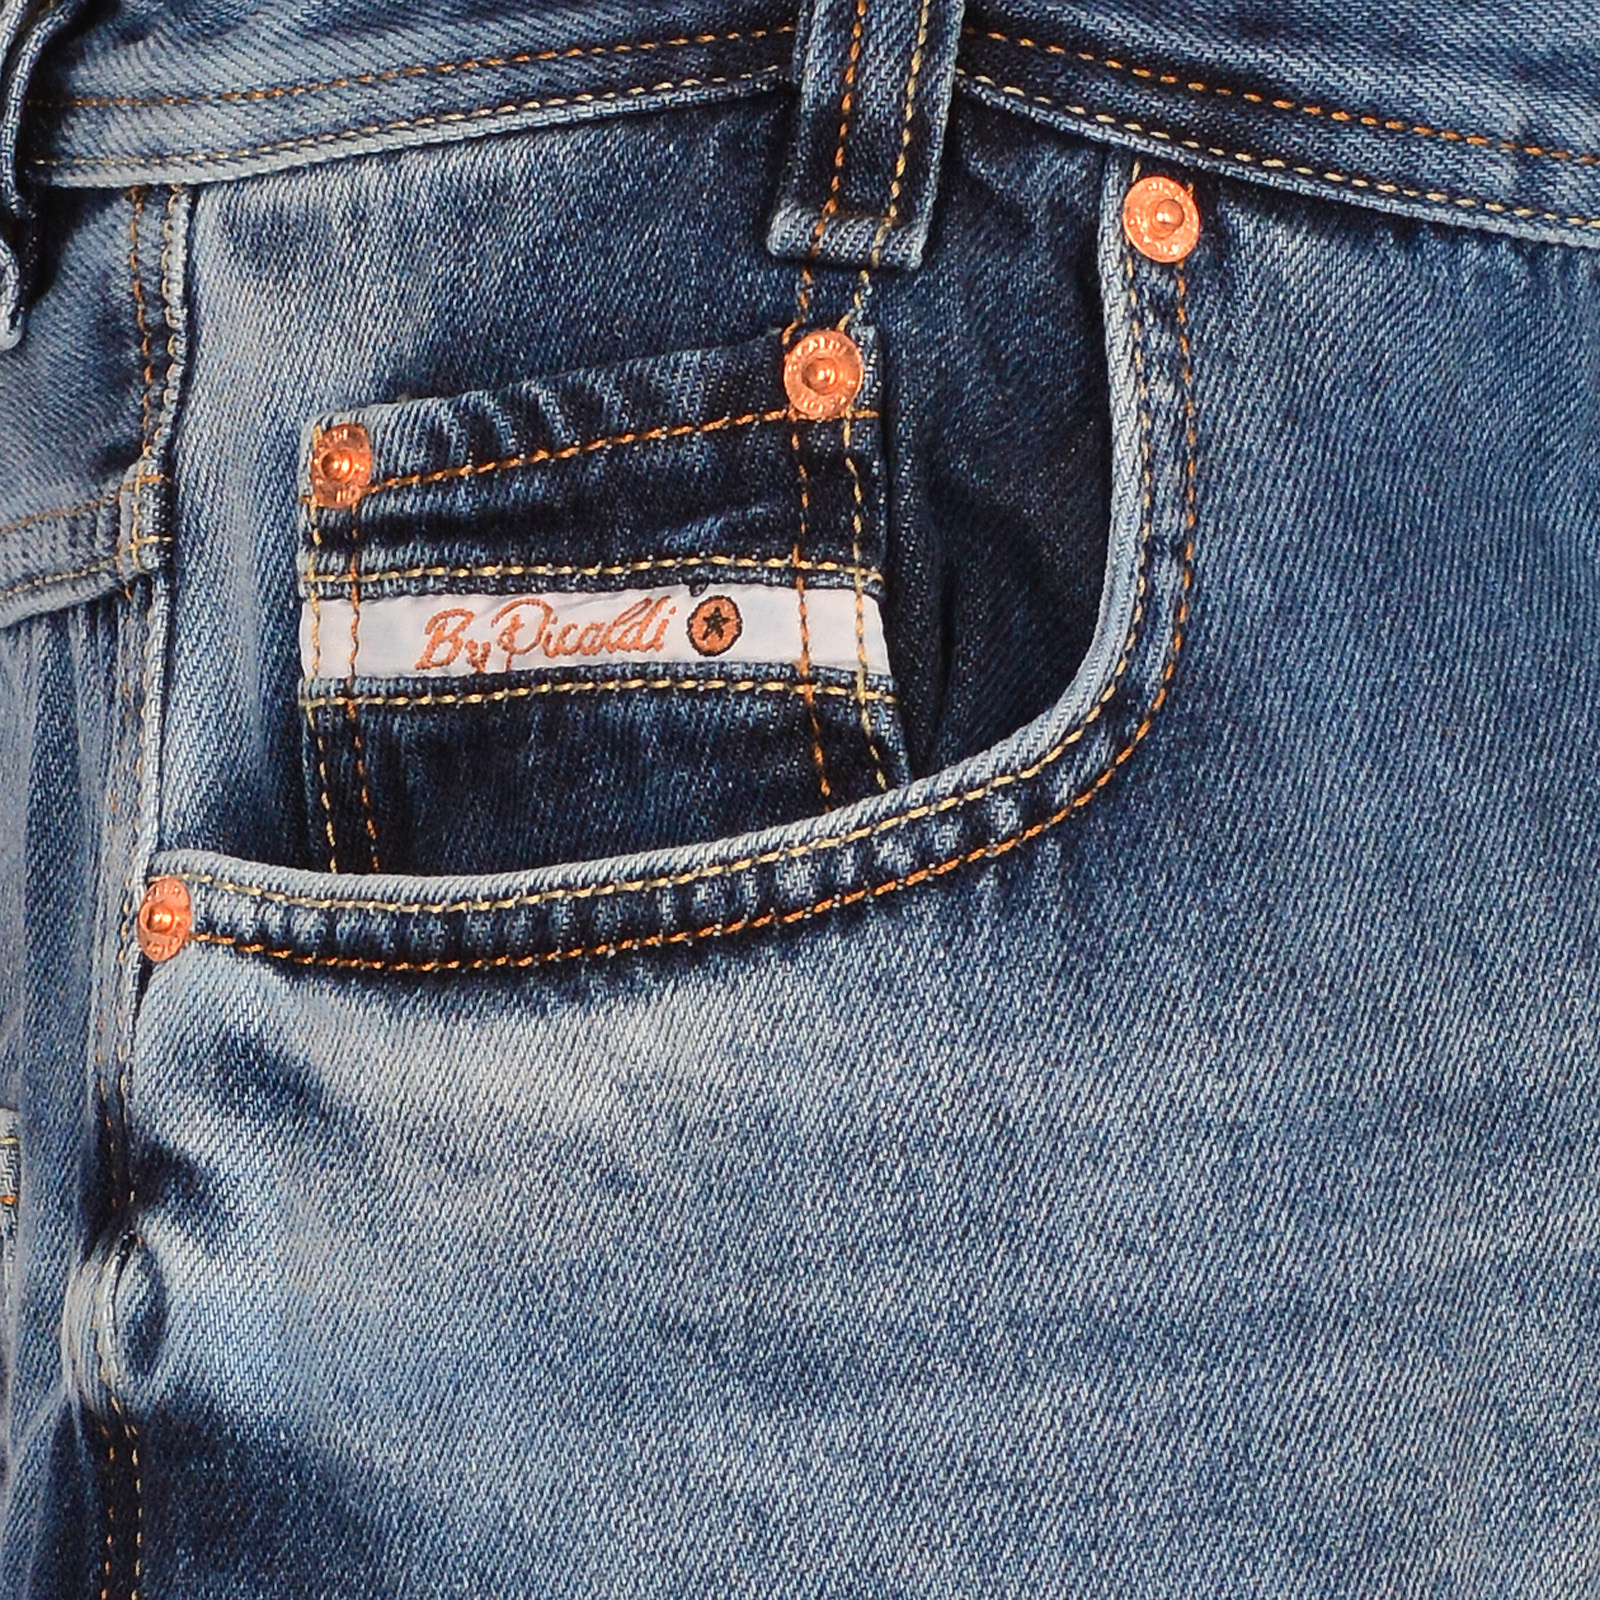 Zicco 472 Jeans - Sixtyfive